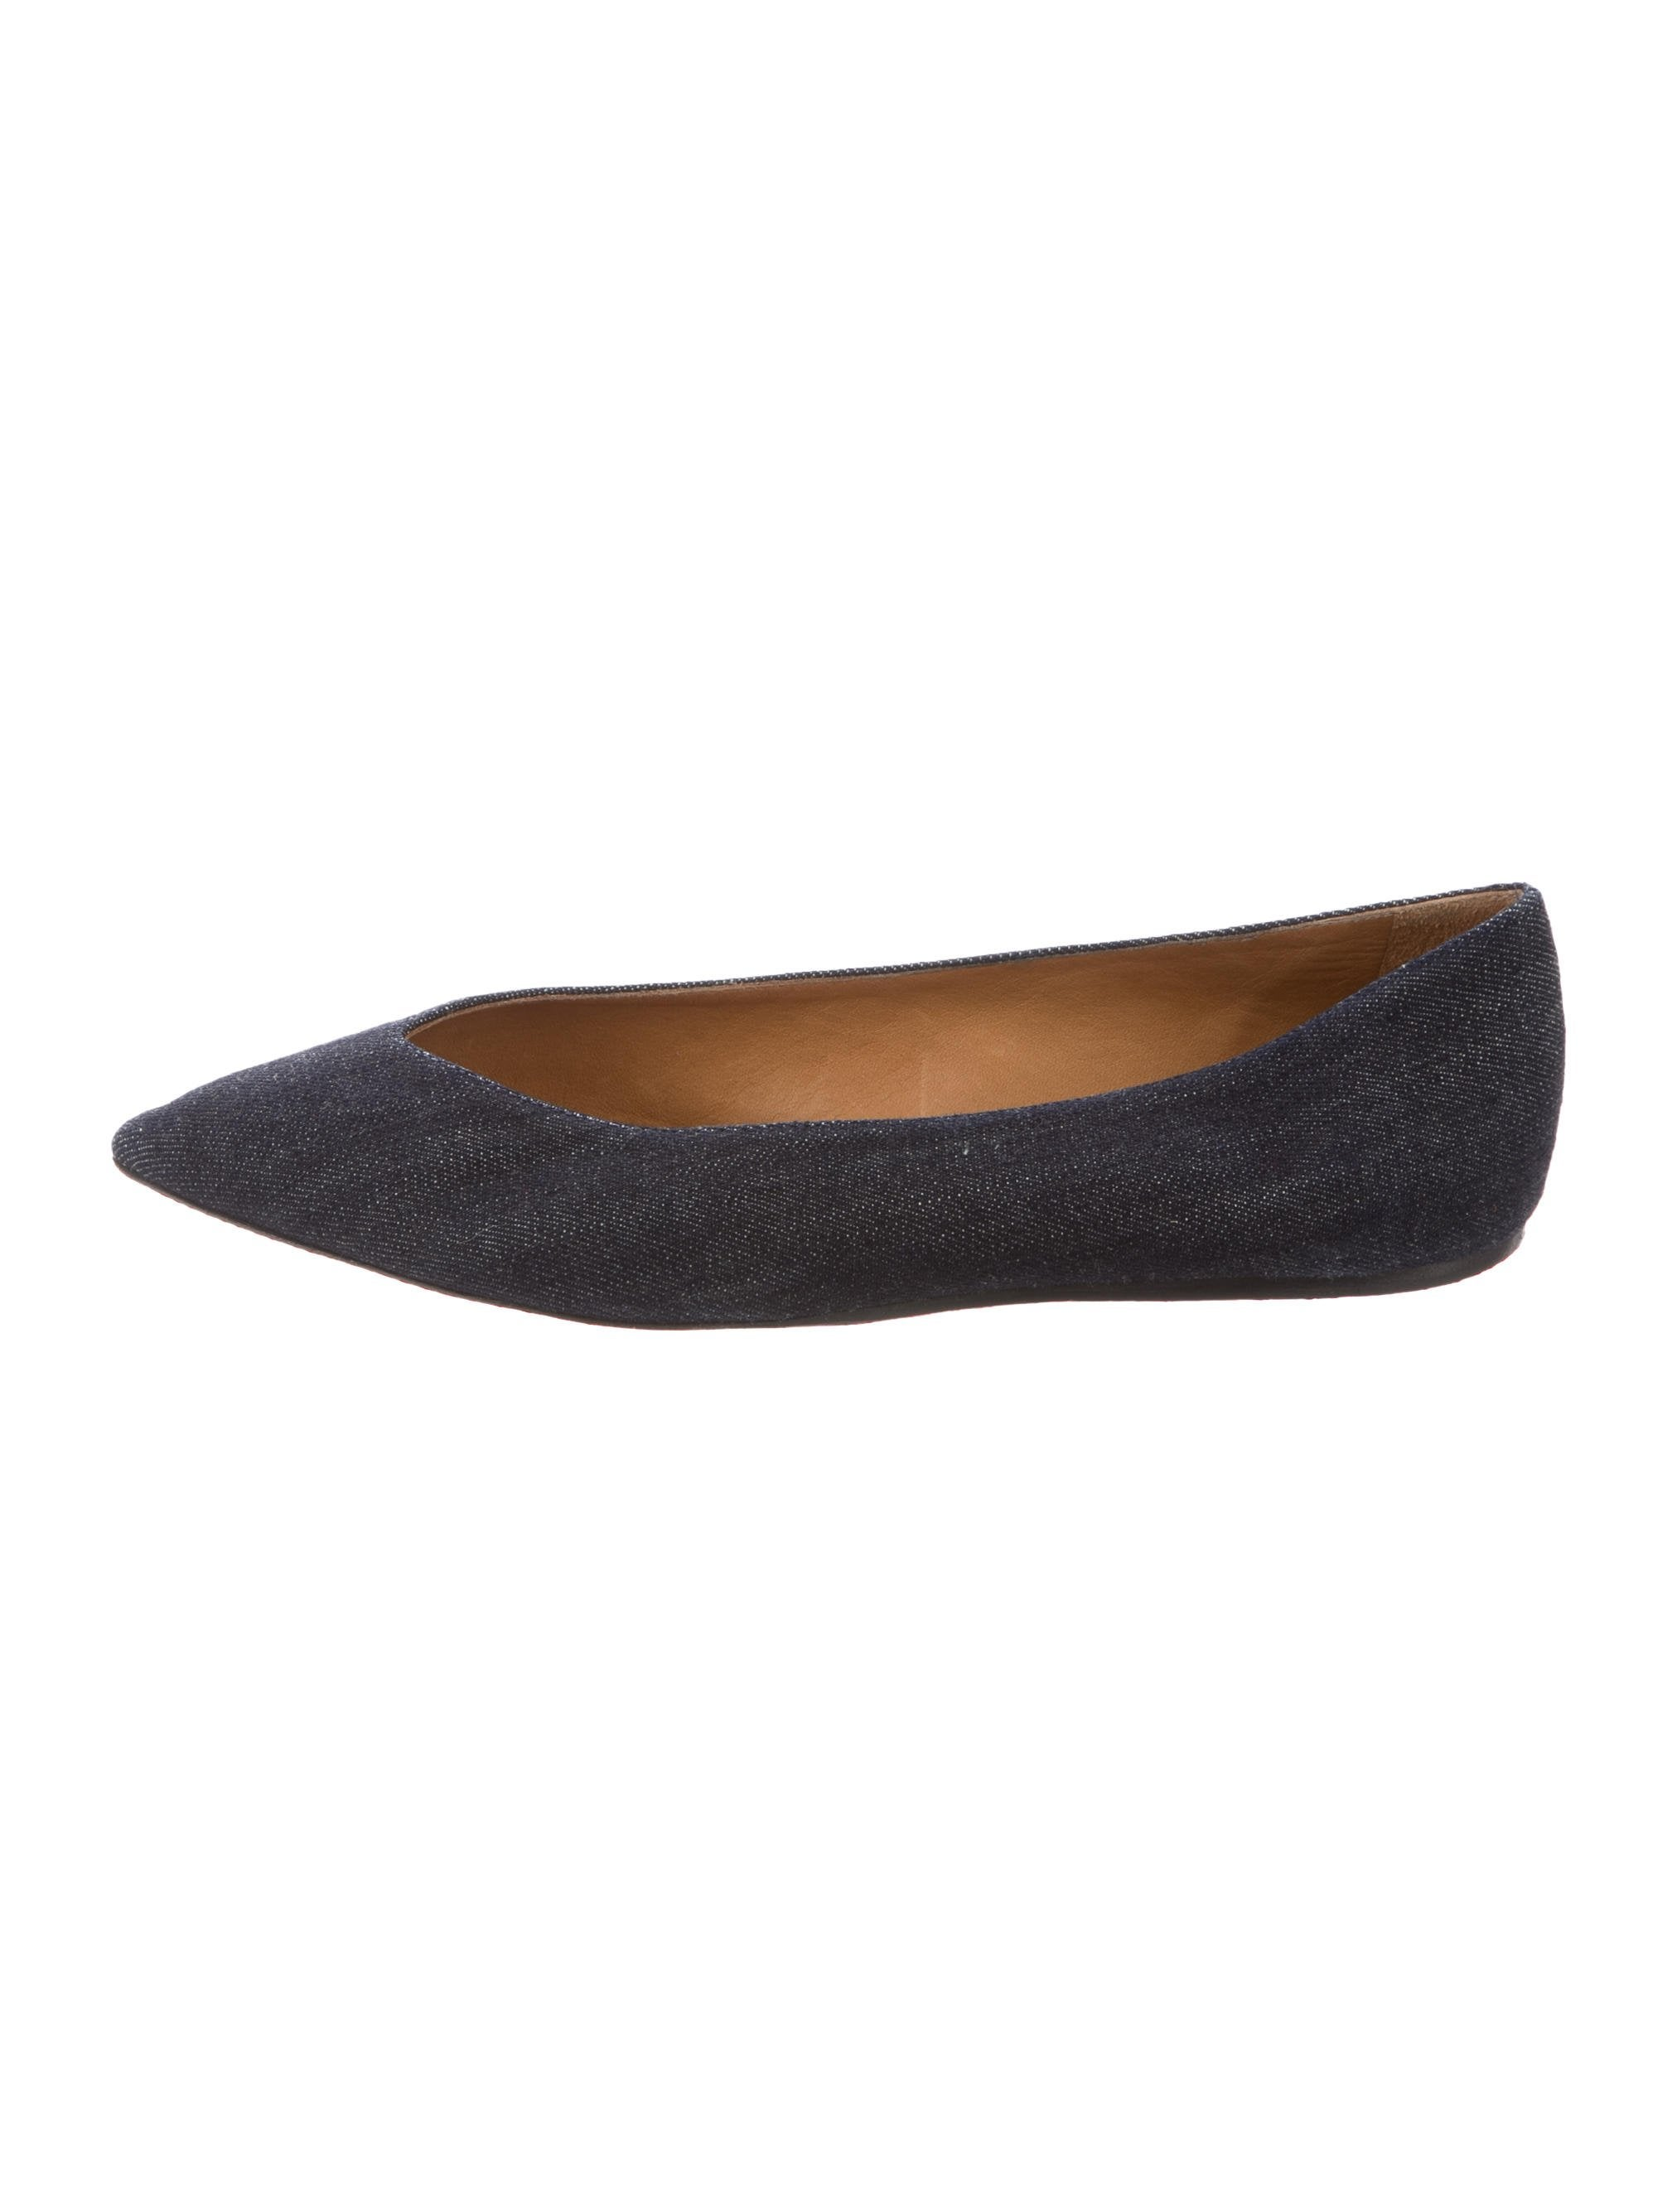 Isabel Marant Denim Pointed-Toe Flats for nice mKo7CNJXt